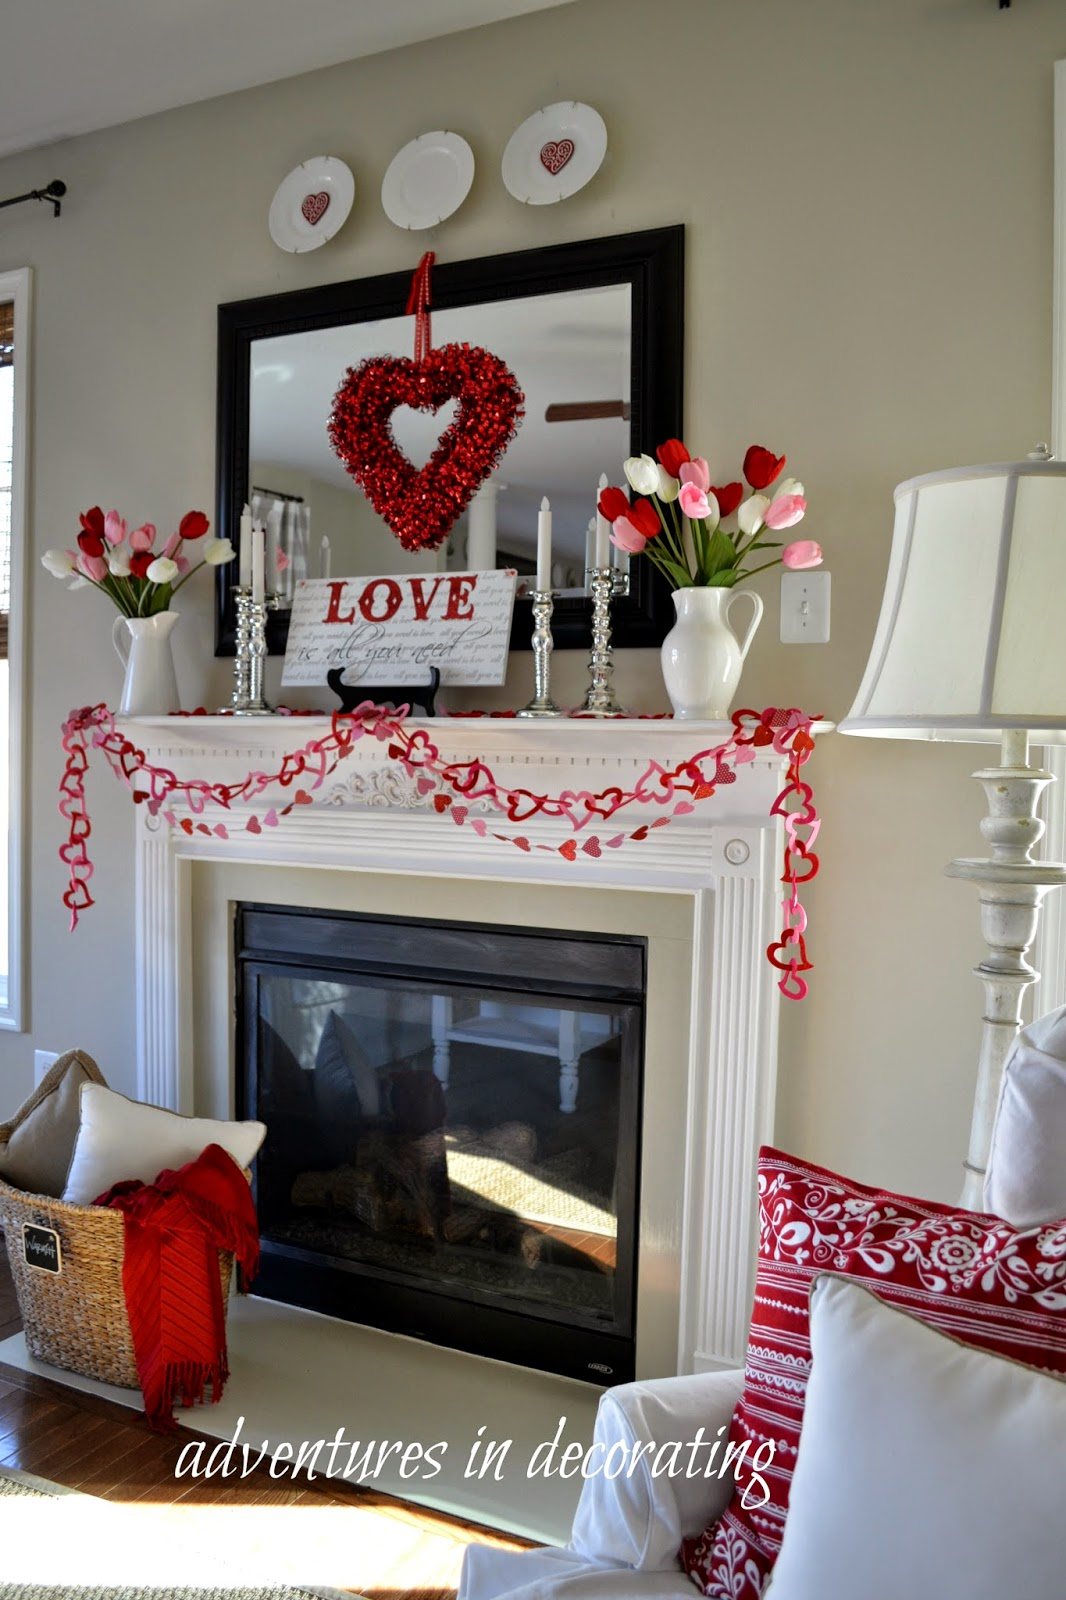 Adventures in Decorating: 2015 Valentine Mantel/Heart and Home ...